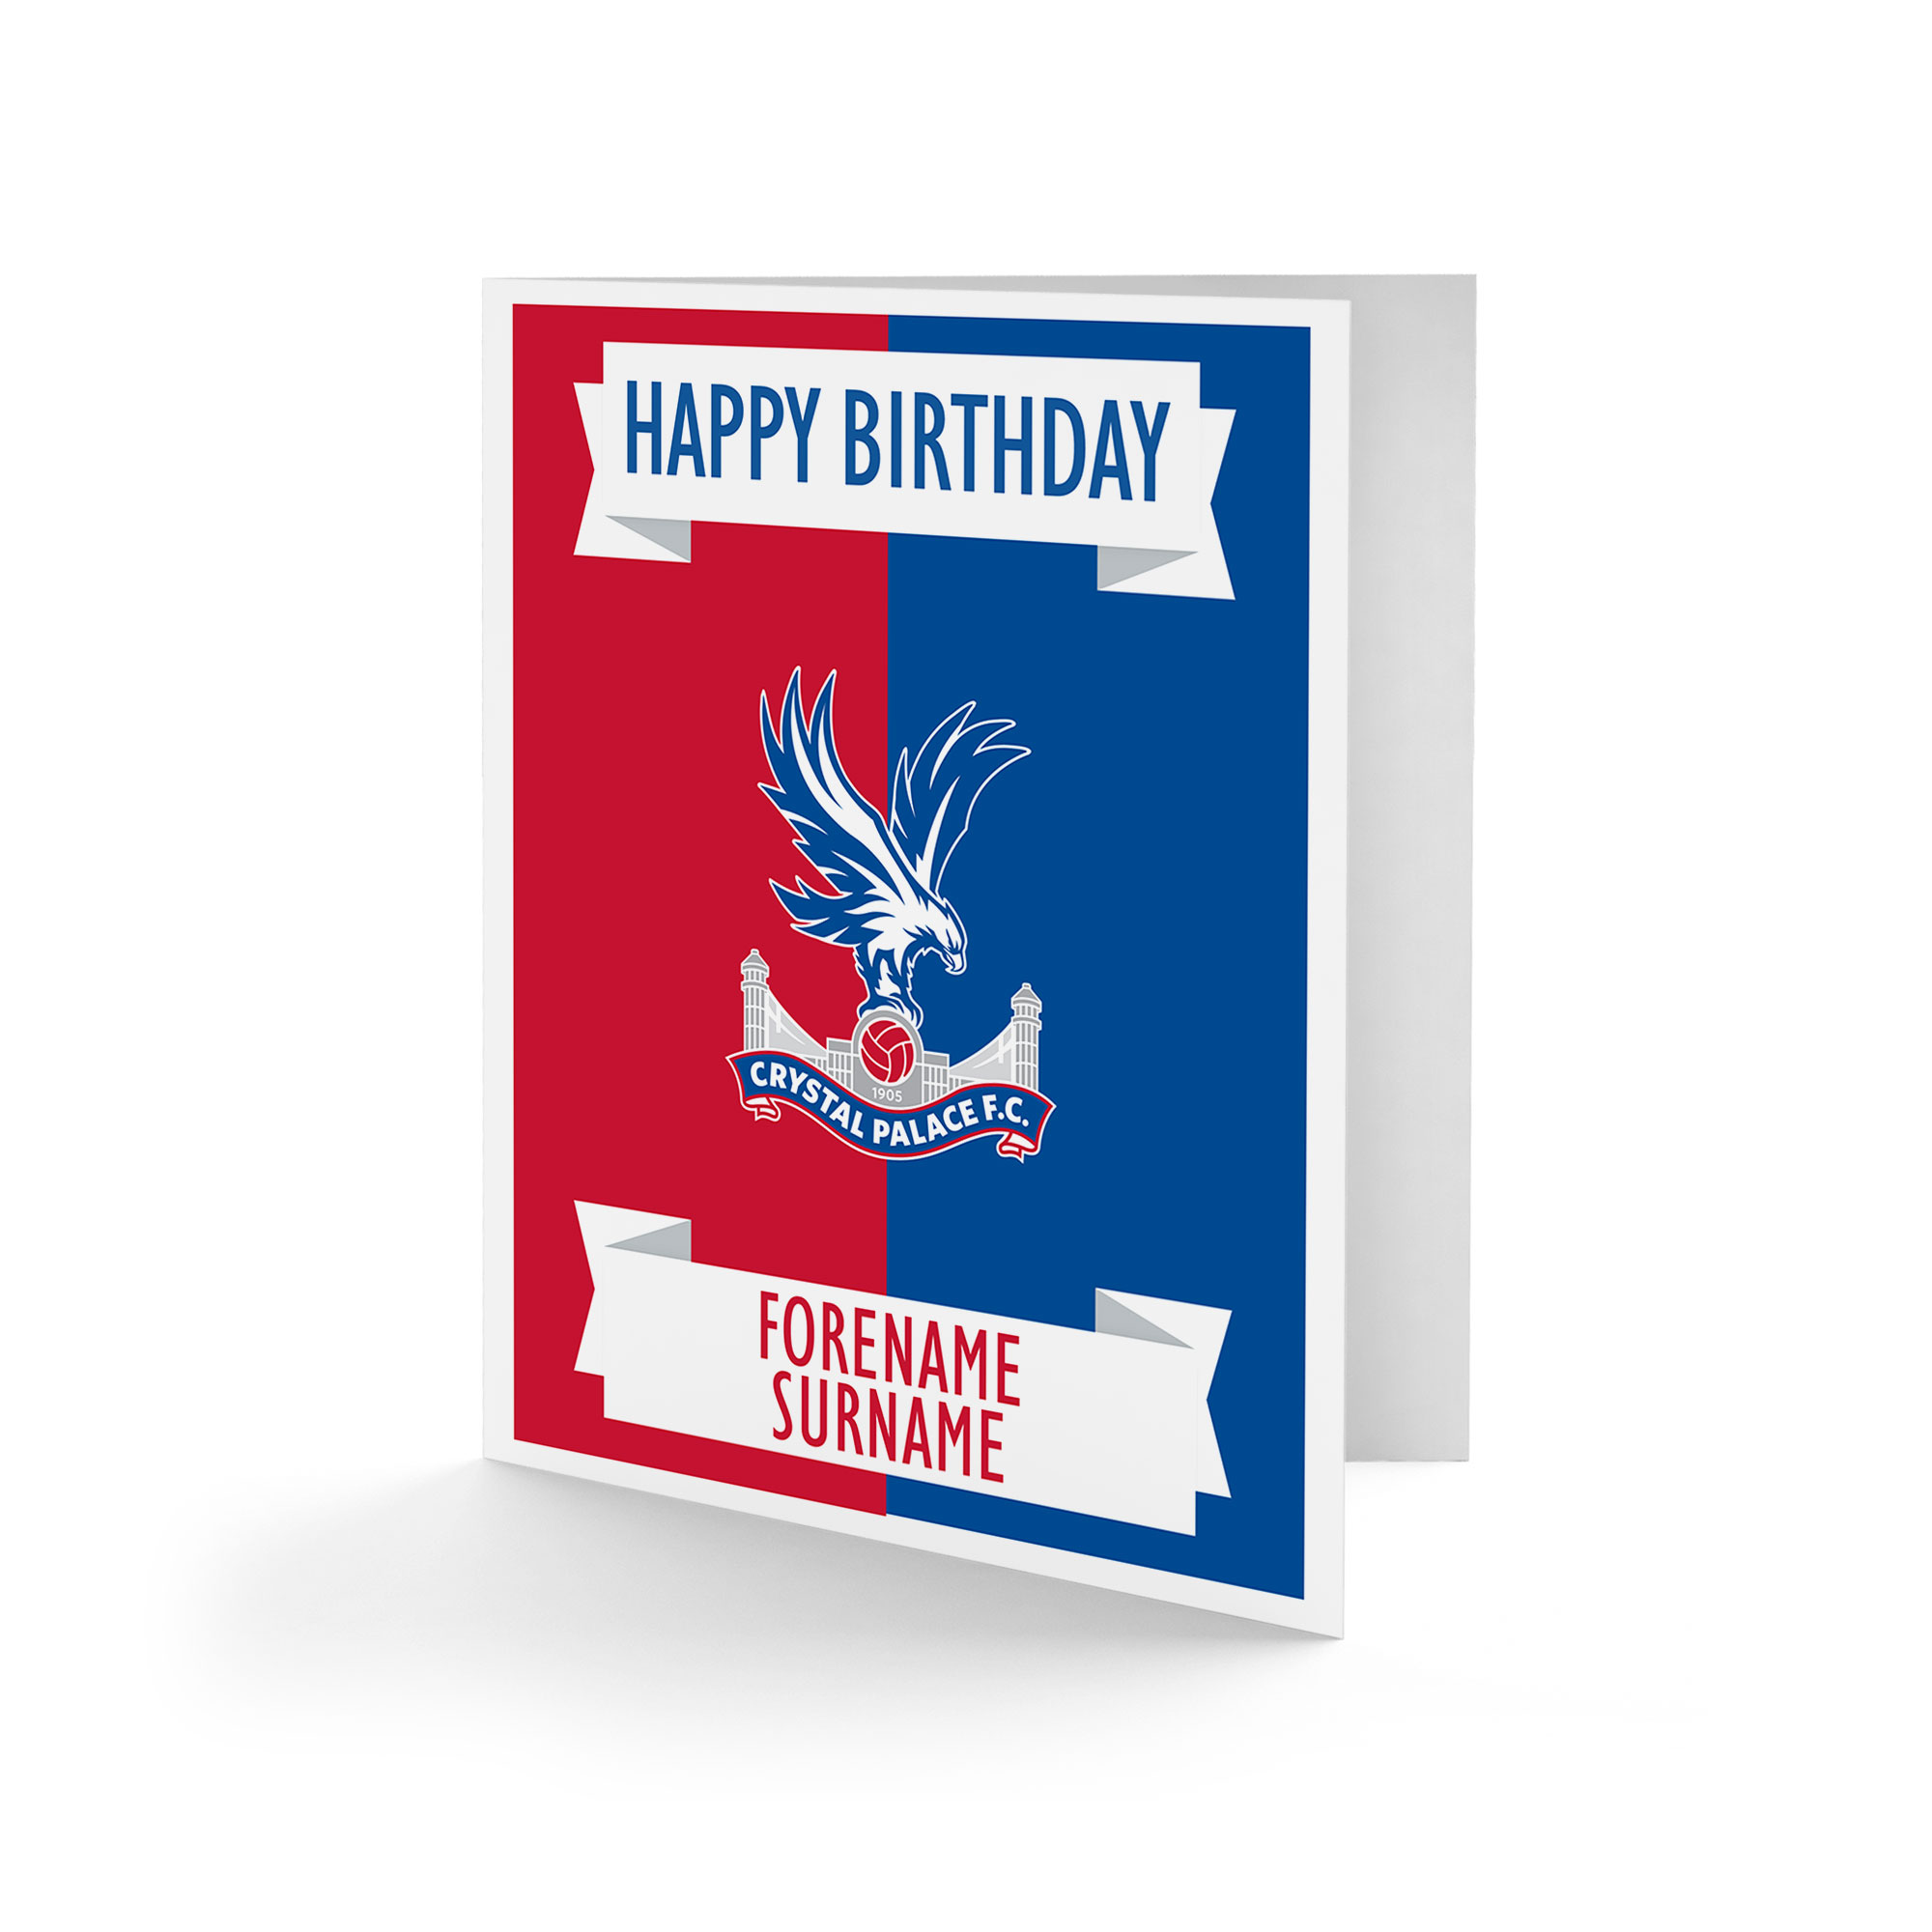 Crystal Palace FC Crest Birthday Card